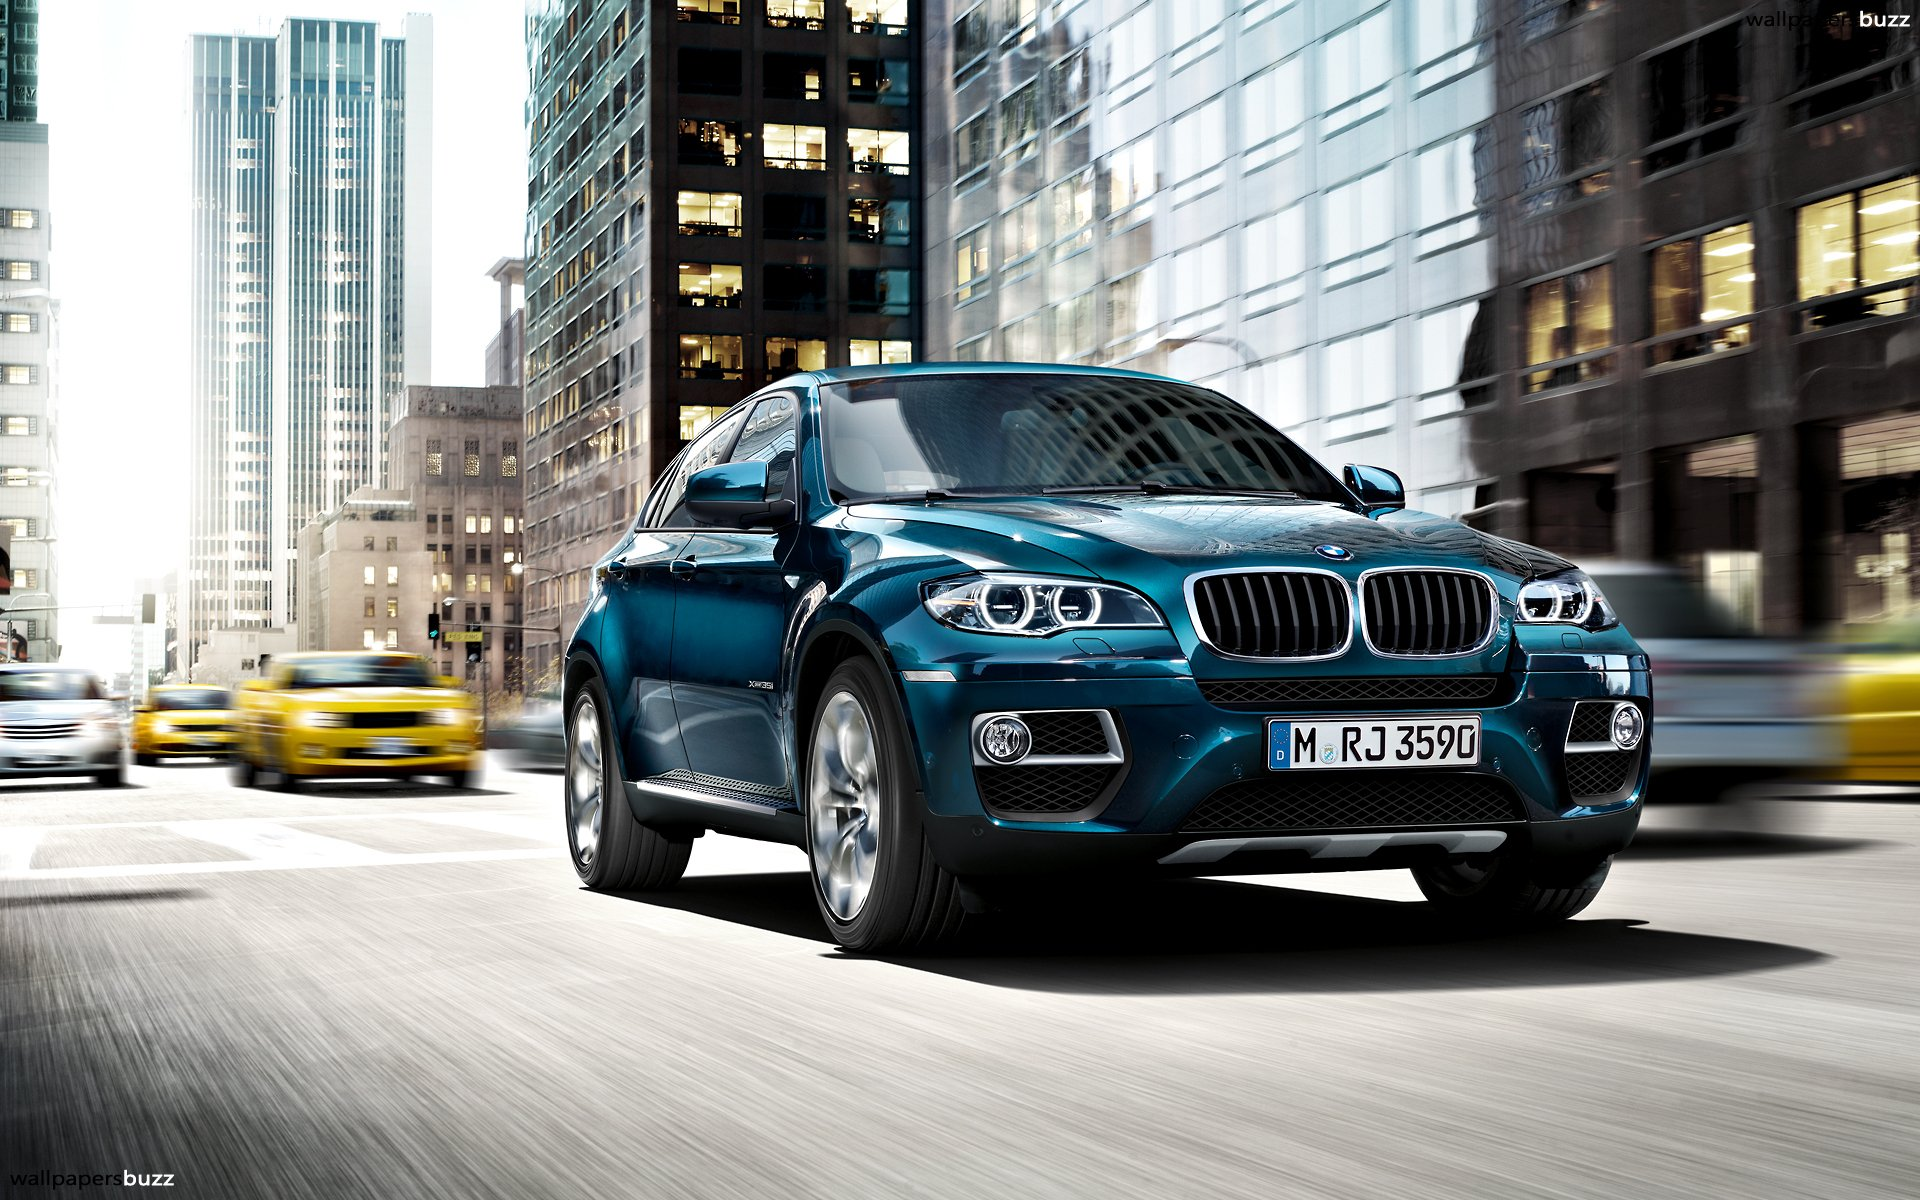 1920x1200 - BMW X6 Wallpapers 22